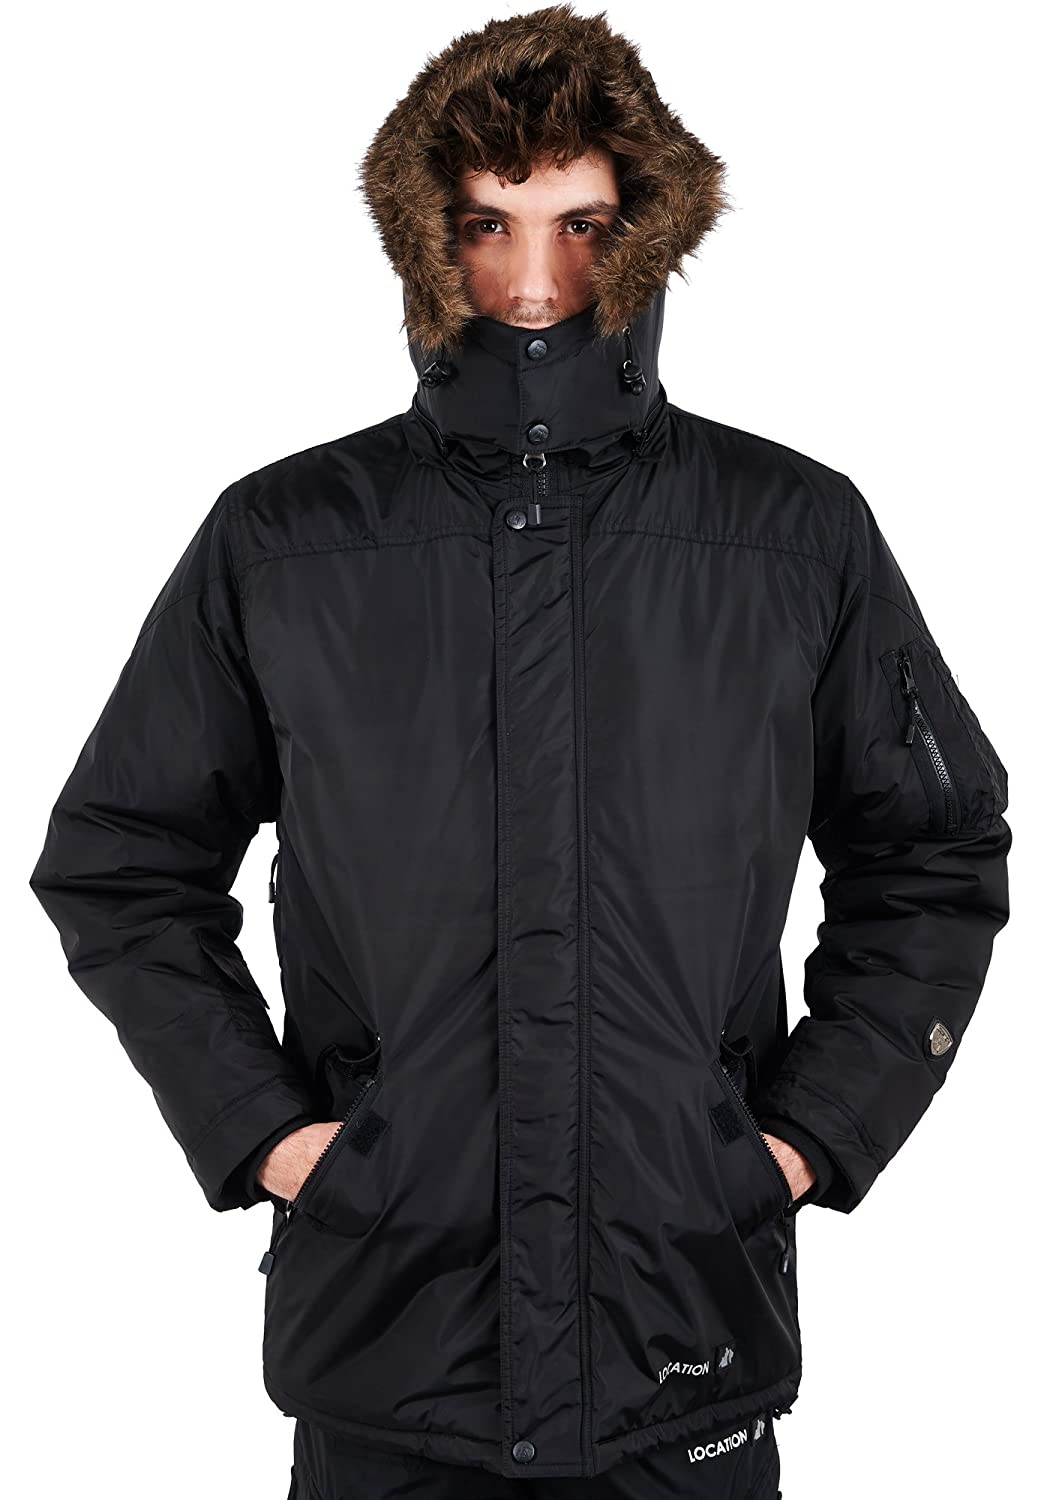 Mens Location Hunter One-10 Military Parka Jacket Waterproof Quilted Padded Coat